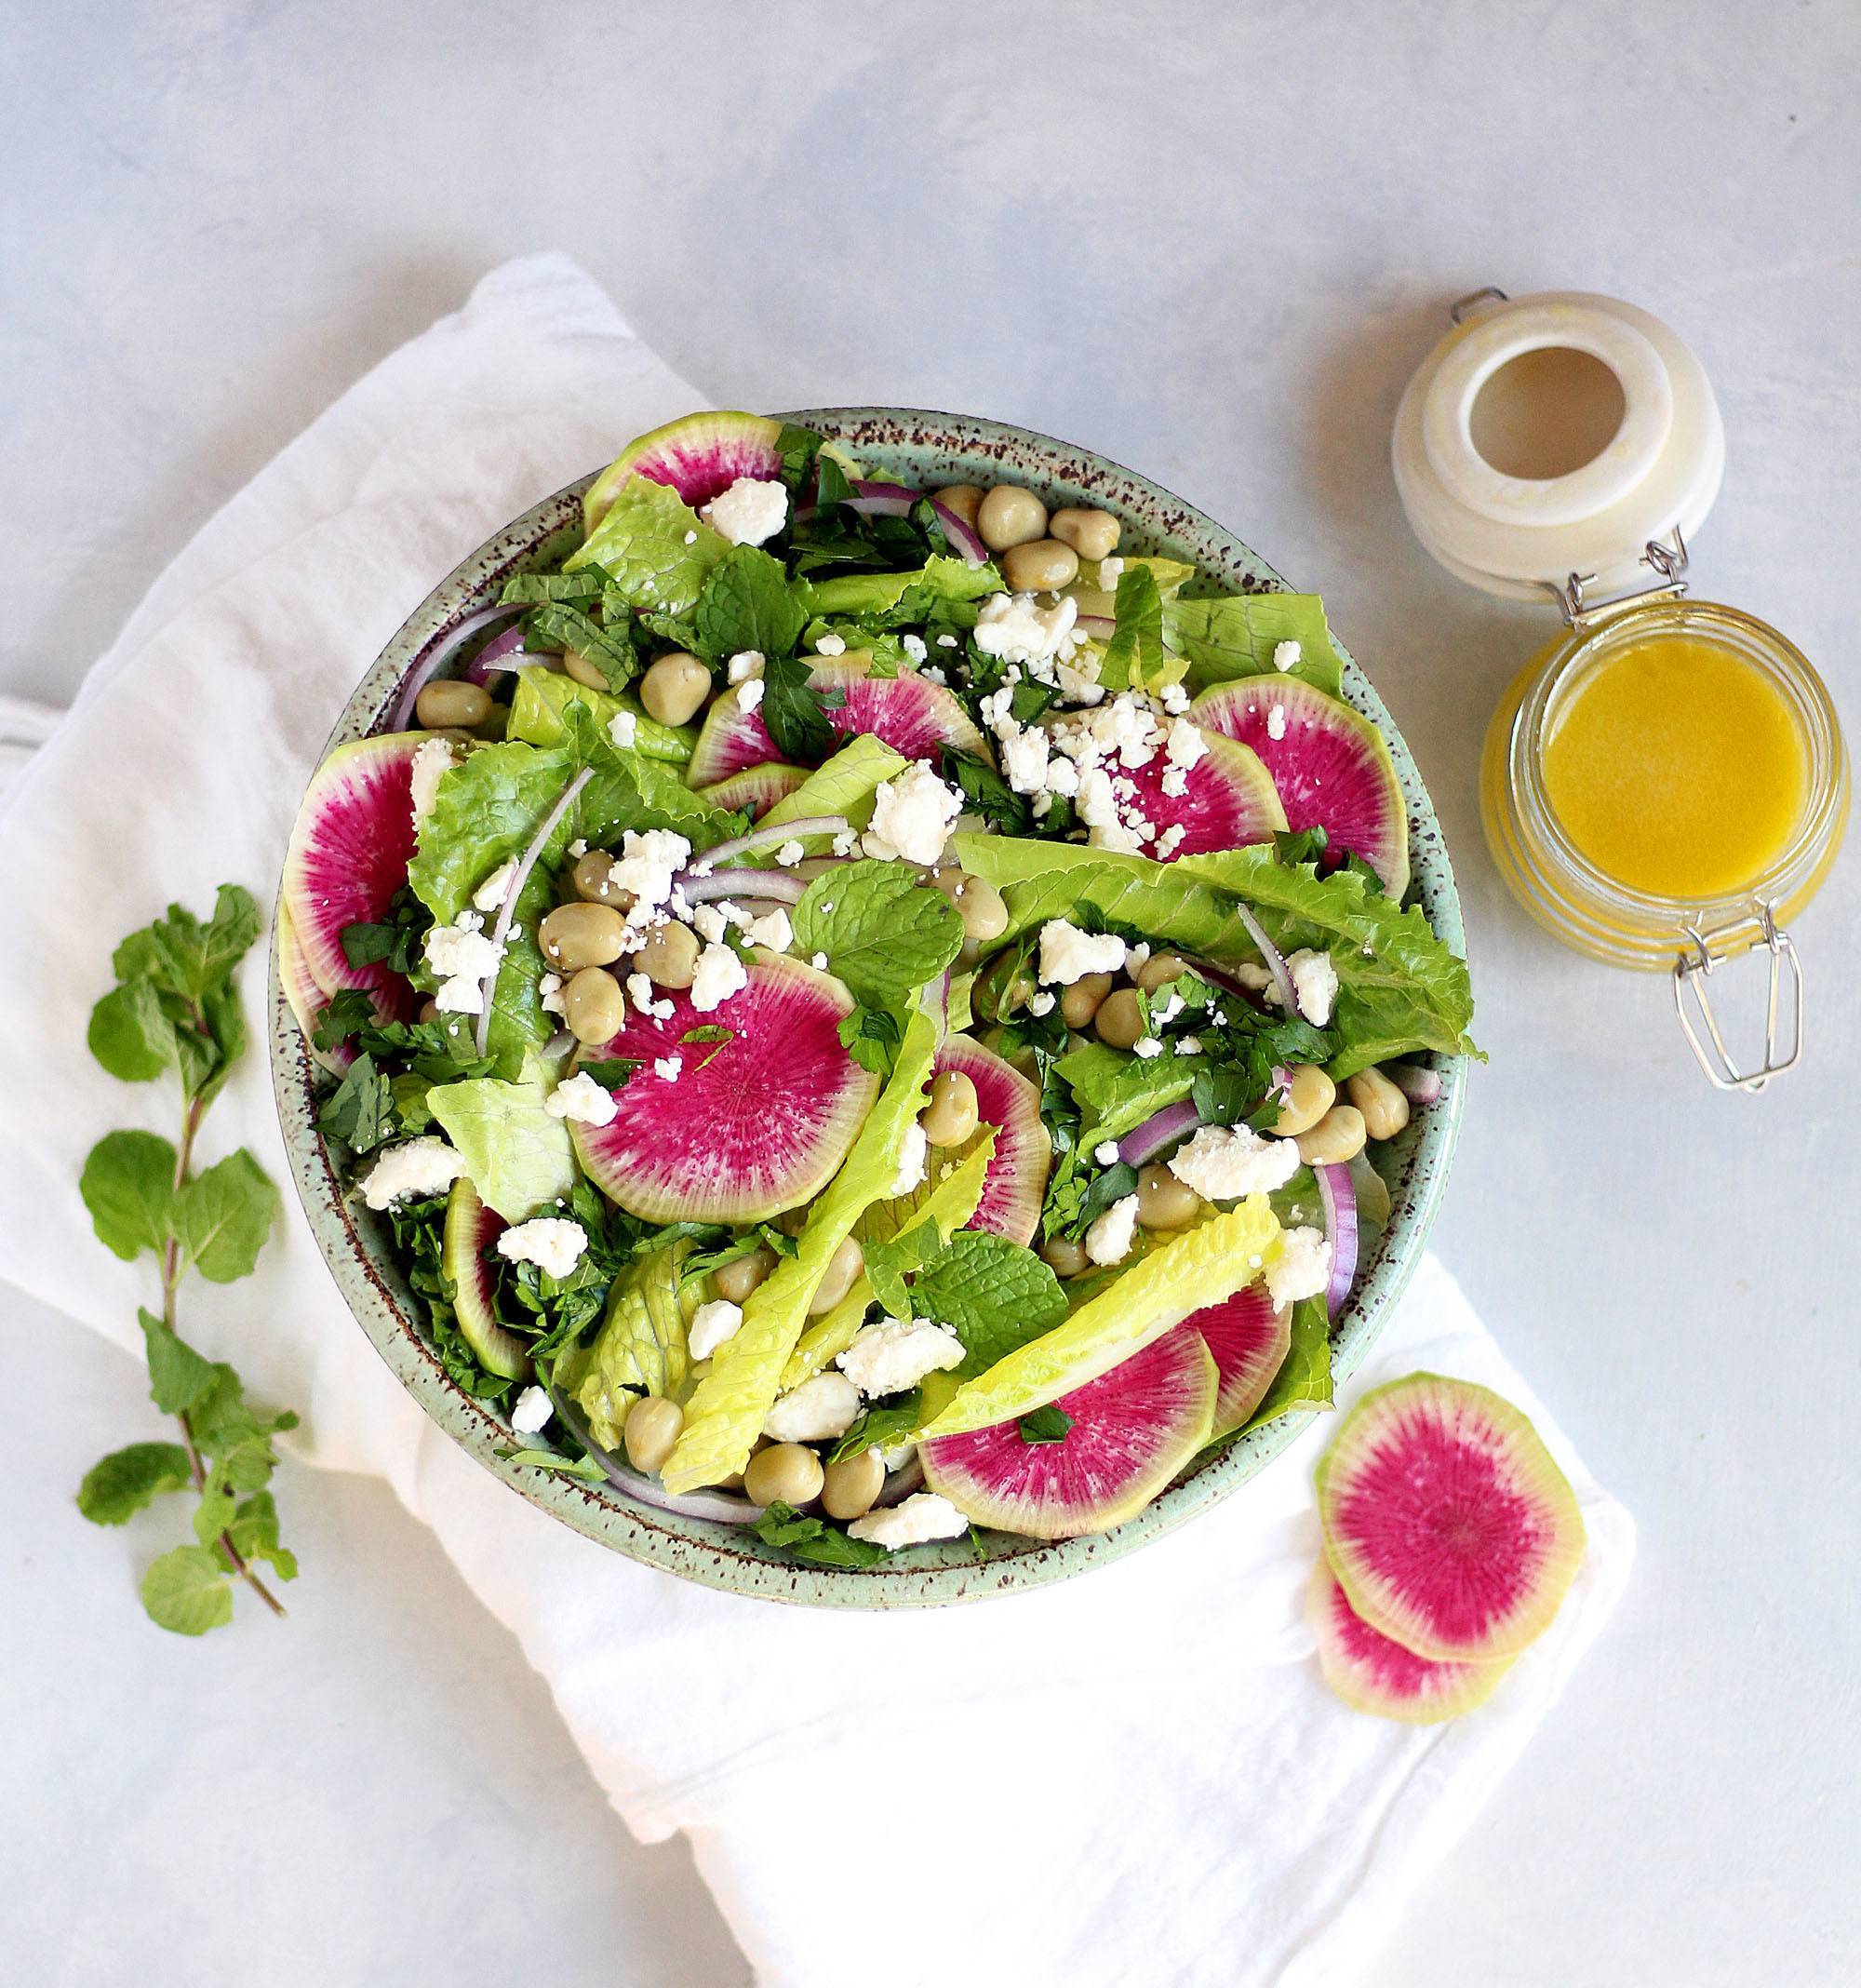 What salads can be prepared with radishes